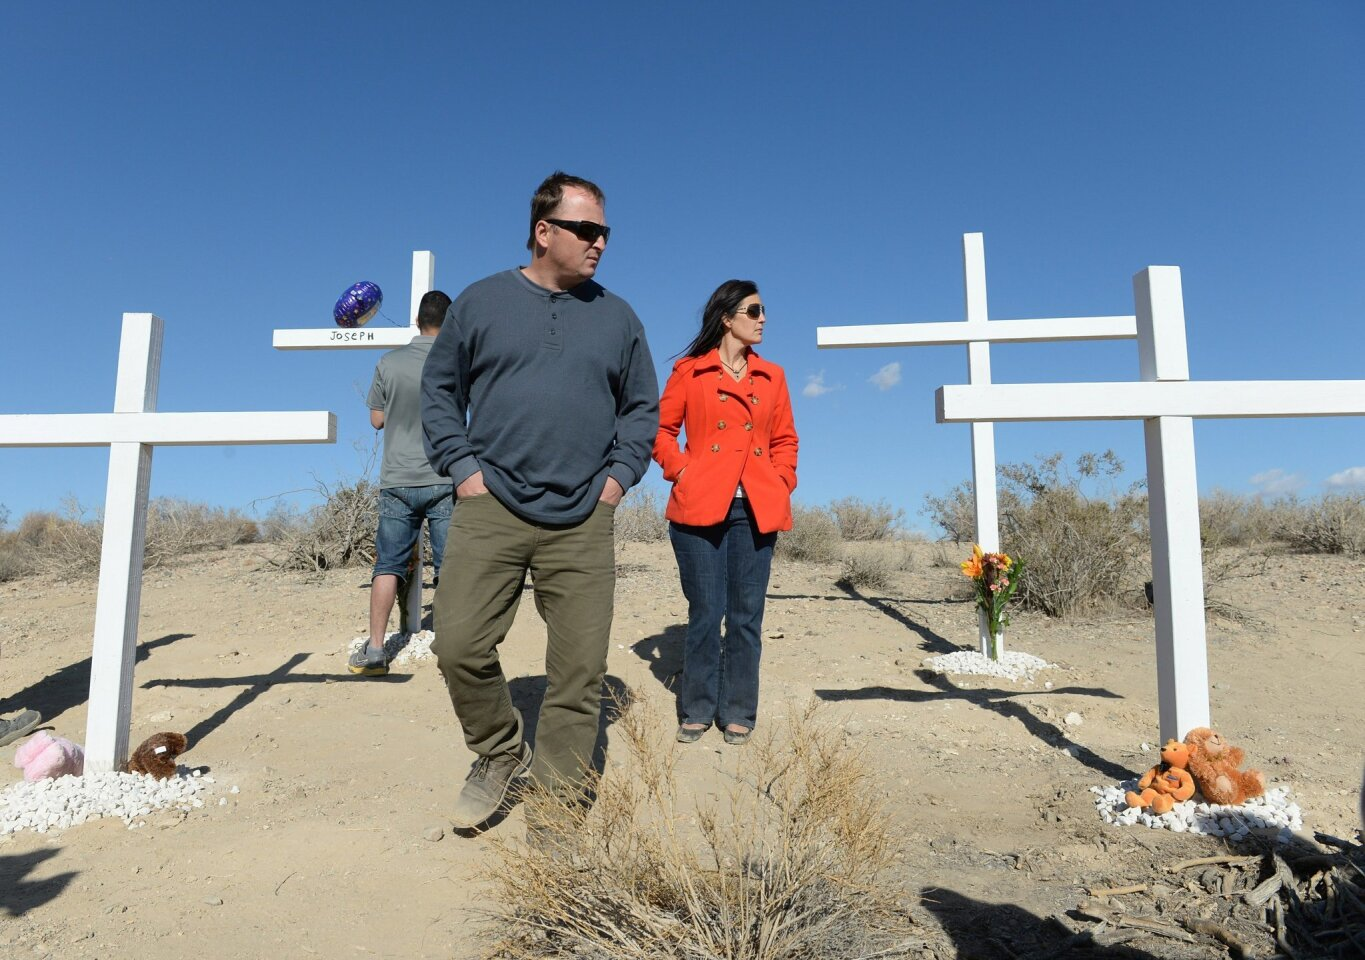 Family members and friends of the McStay family whose bodies were found in November 2013 in the San Bernardino County desert gathered at the site last year to remember them. Crosses were placed and doves were released where the Fallbrook family's remains were found.